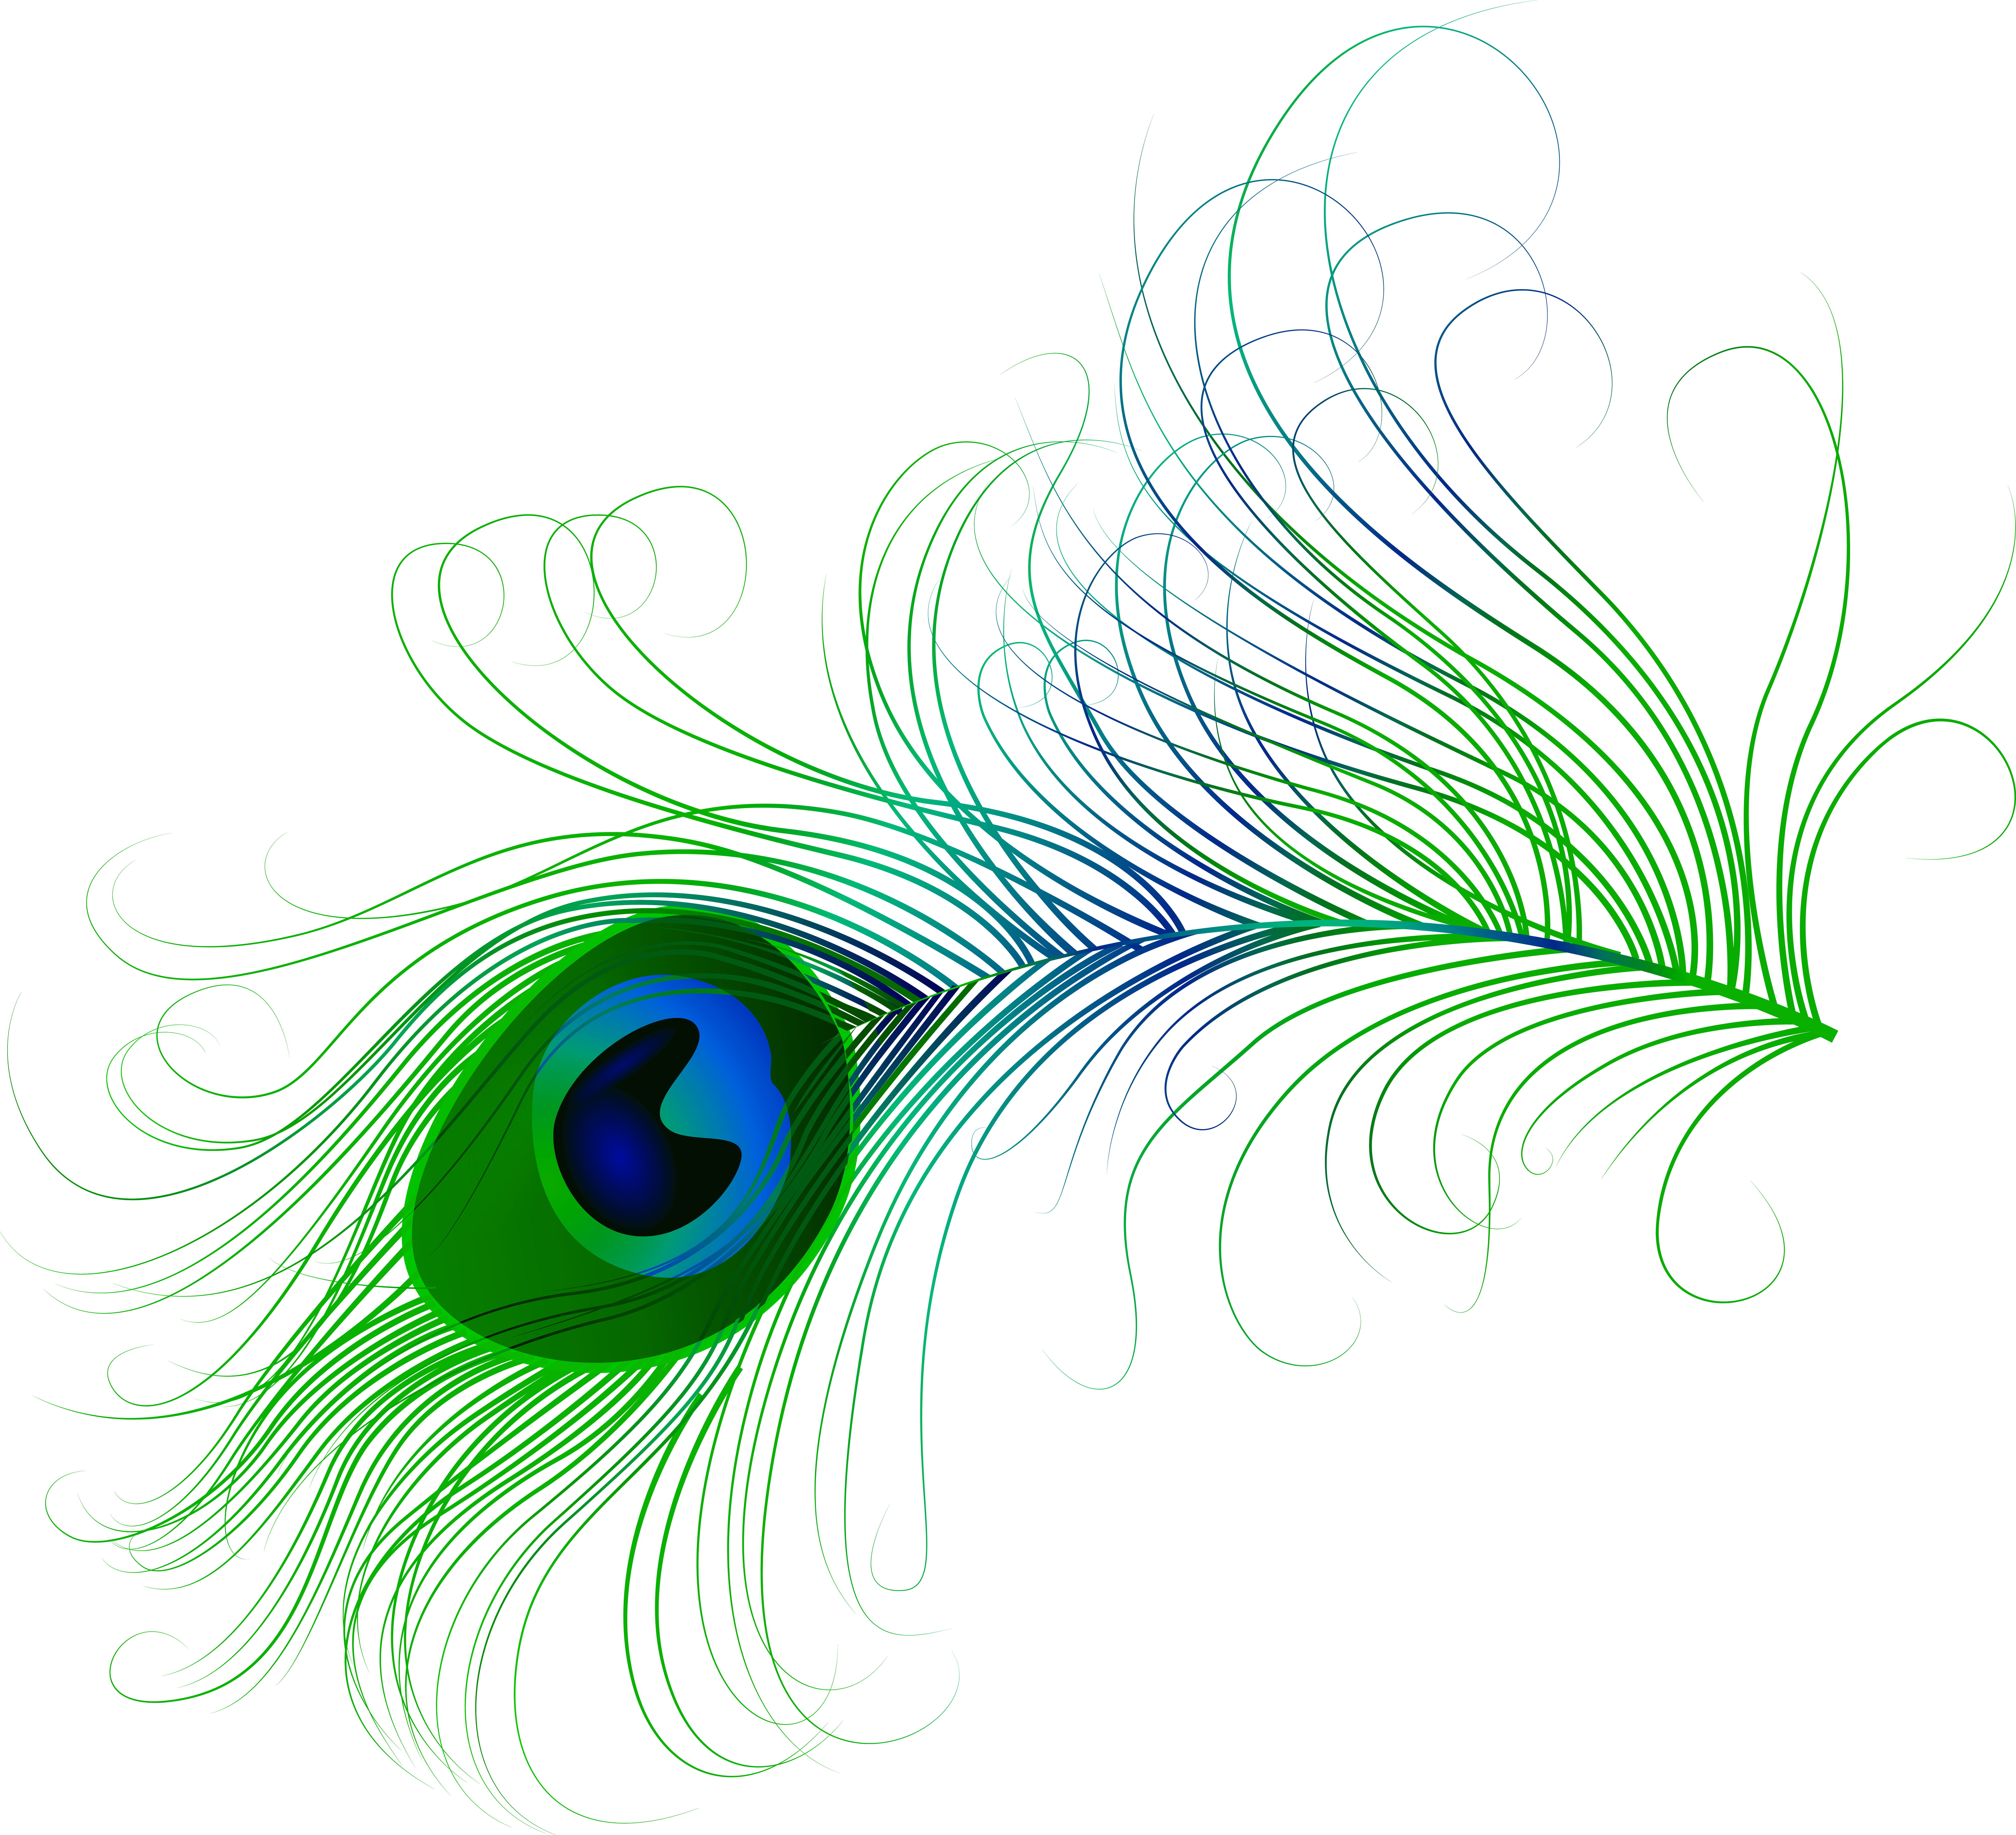 High resolution png images free download. Peacock feather clip art